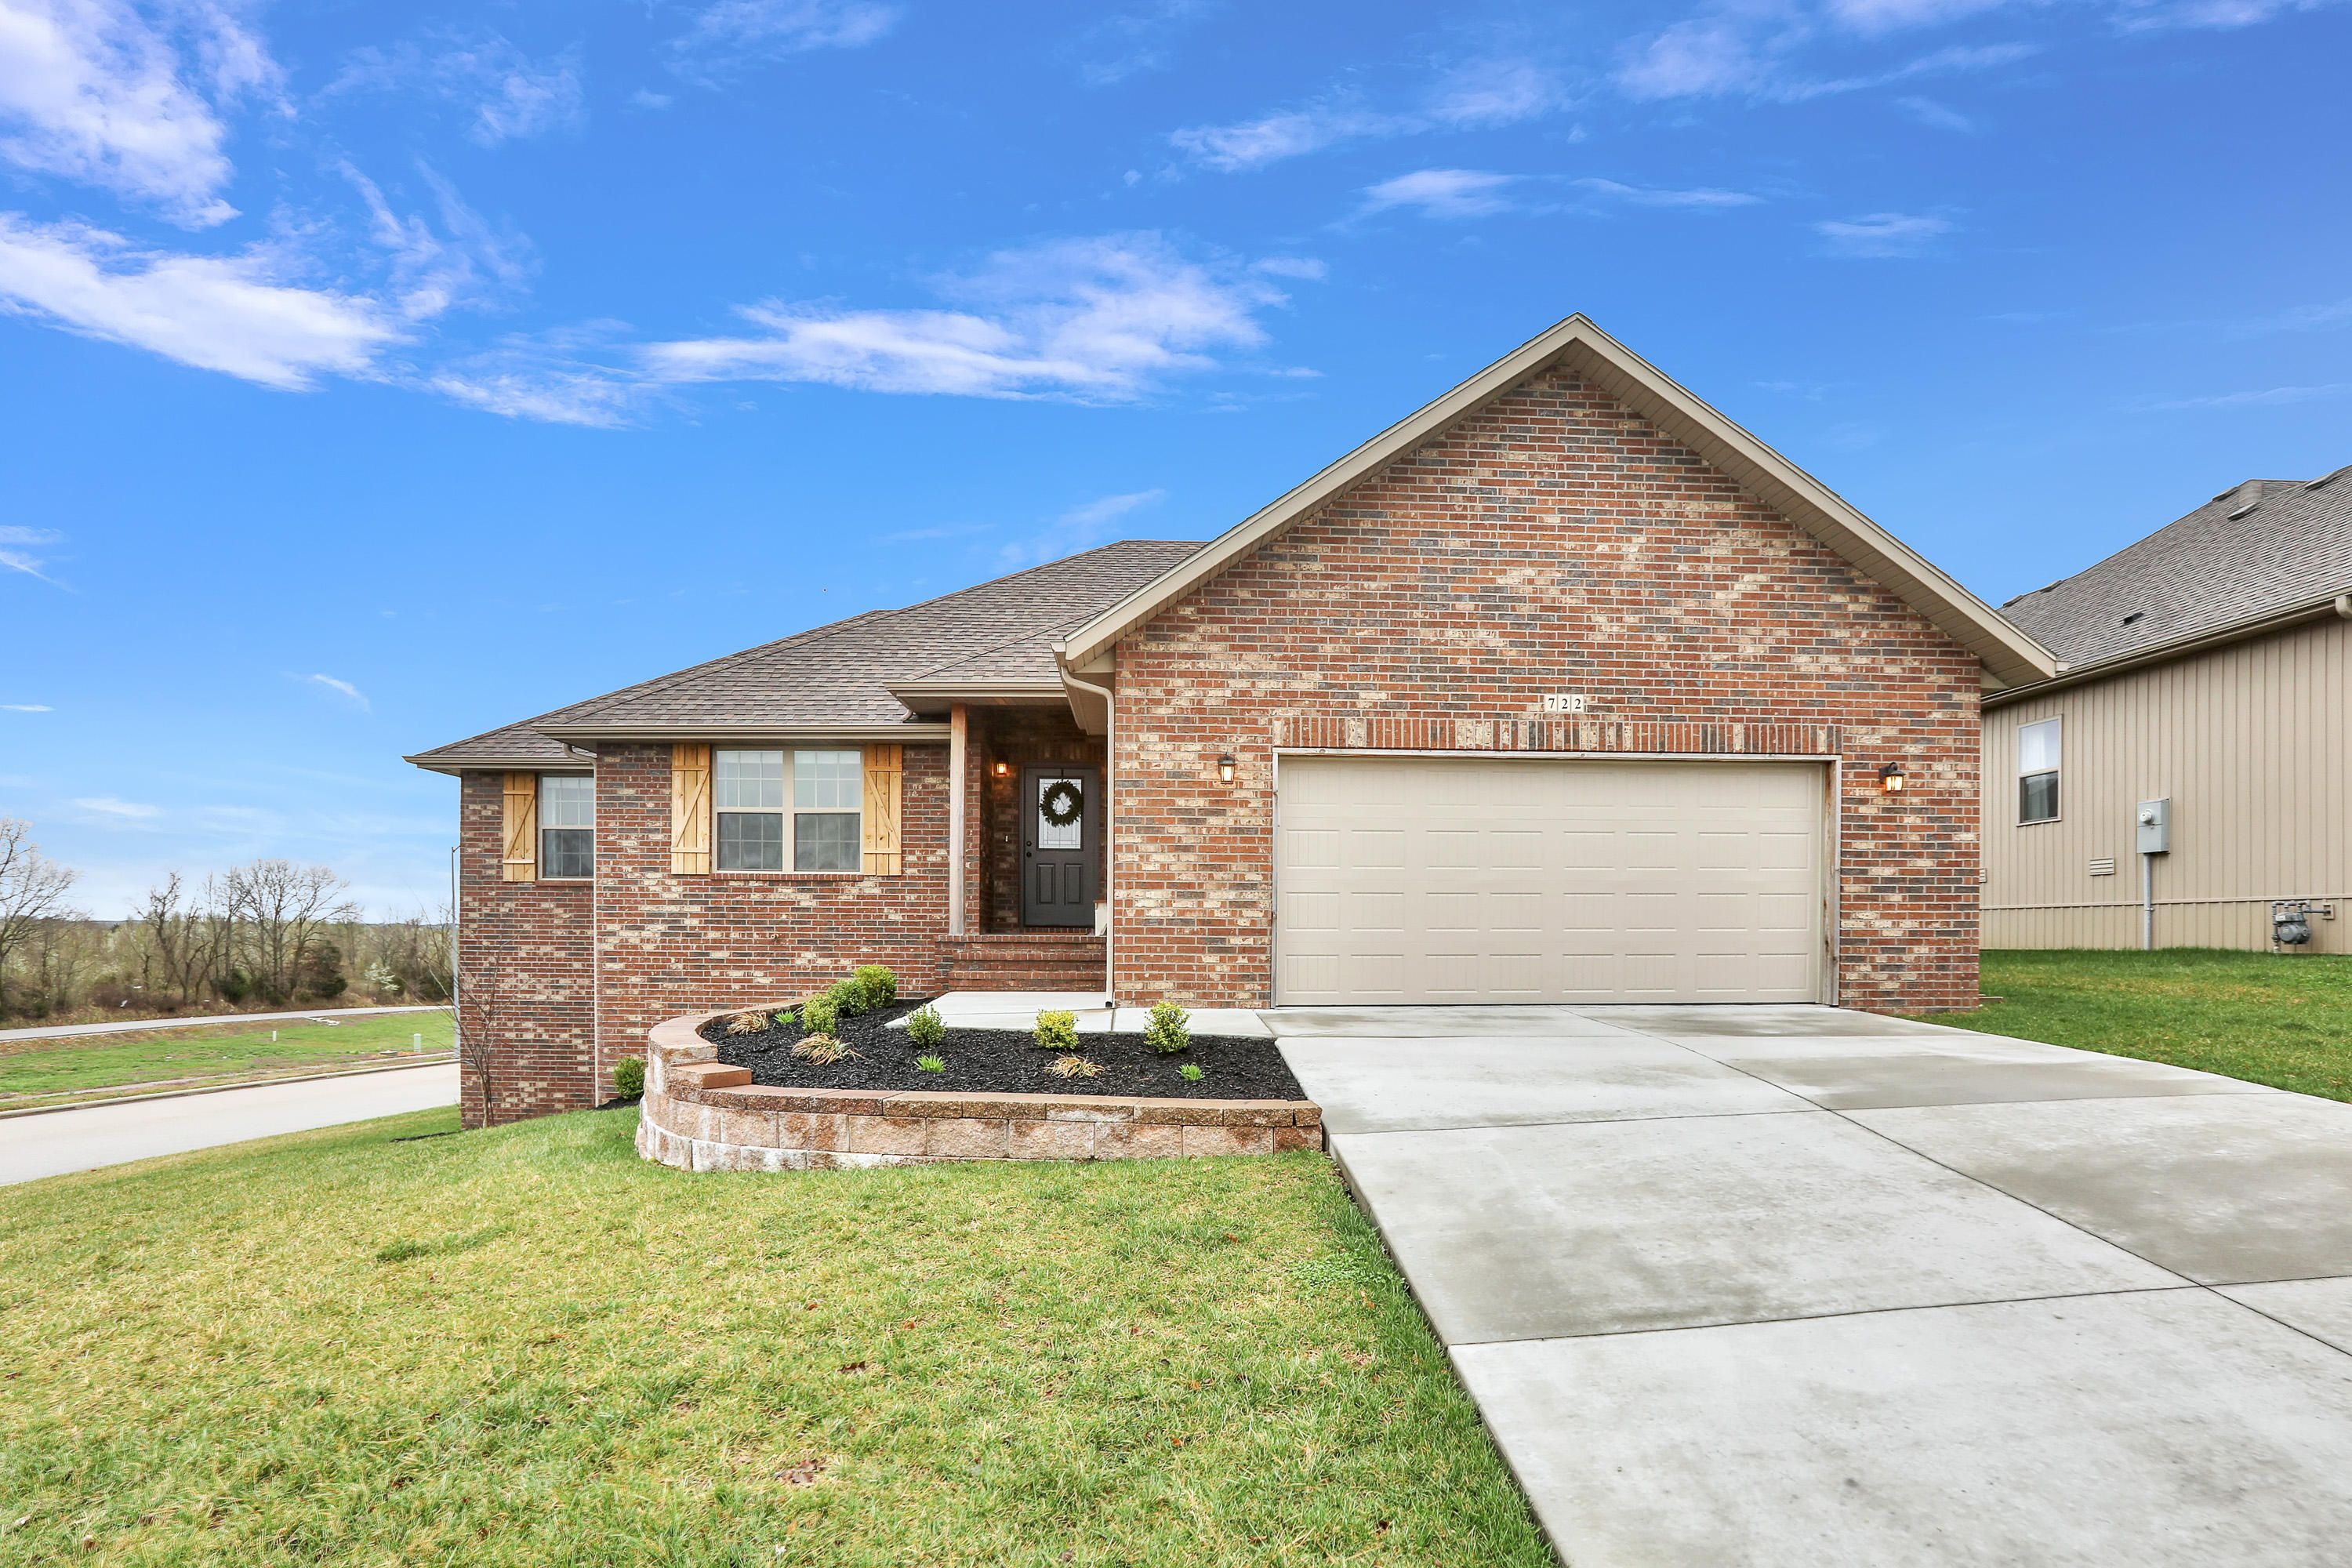 New on the market in cobble creek 4 beds 2 baths 1840 sq